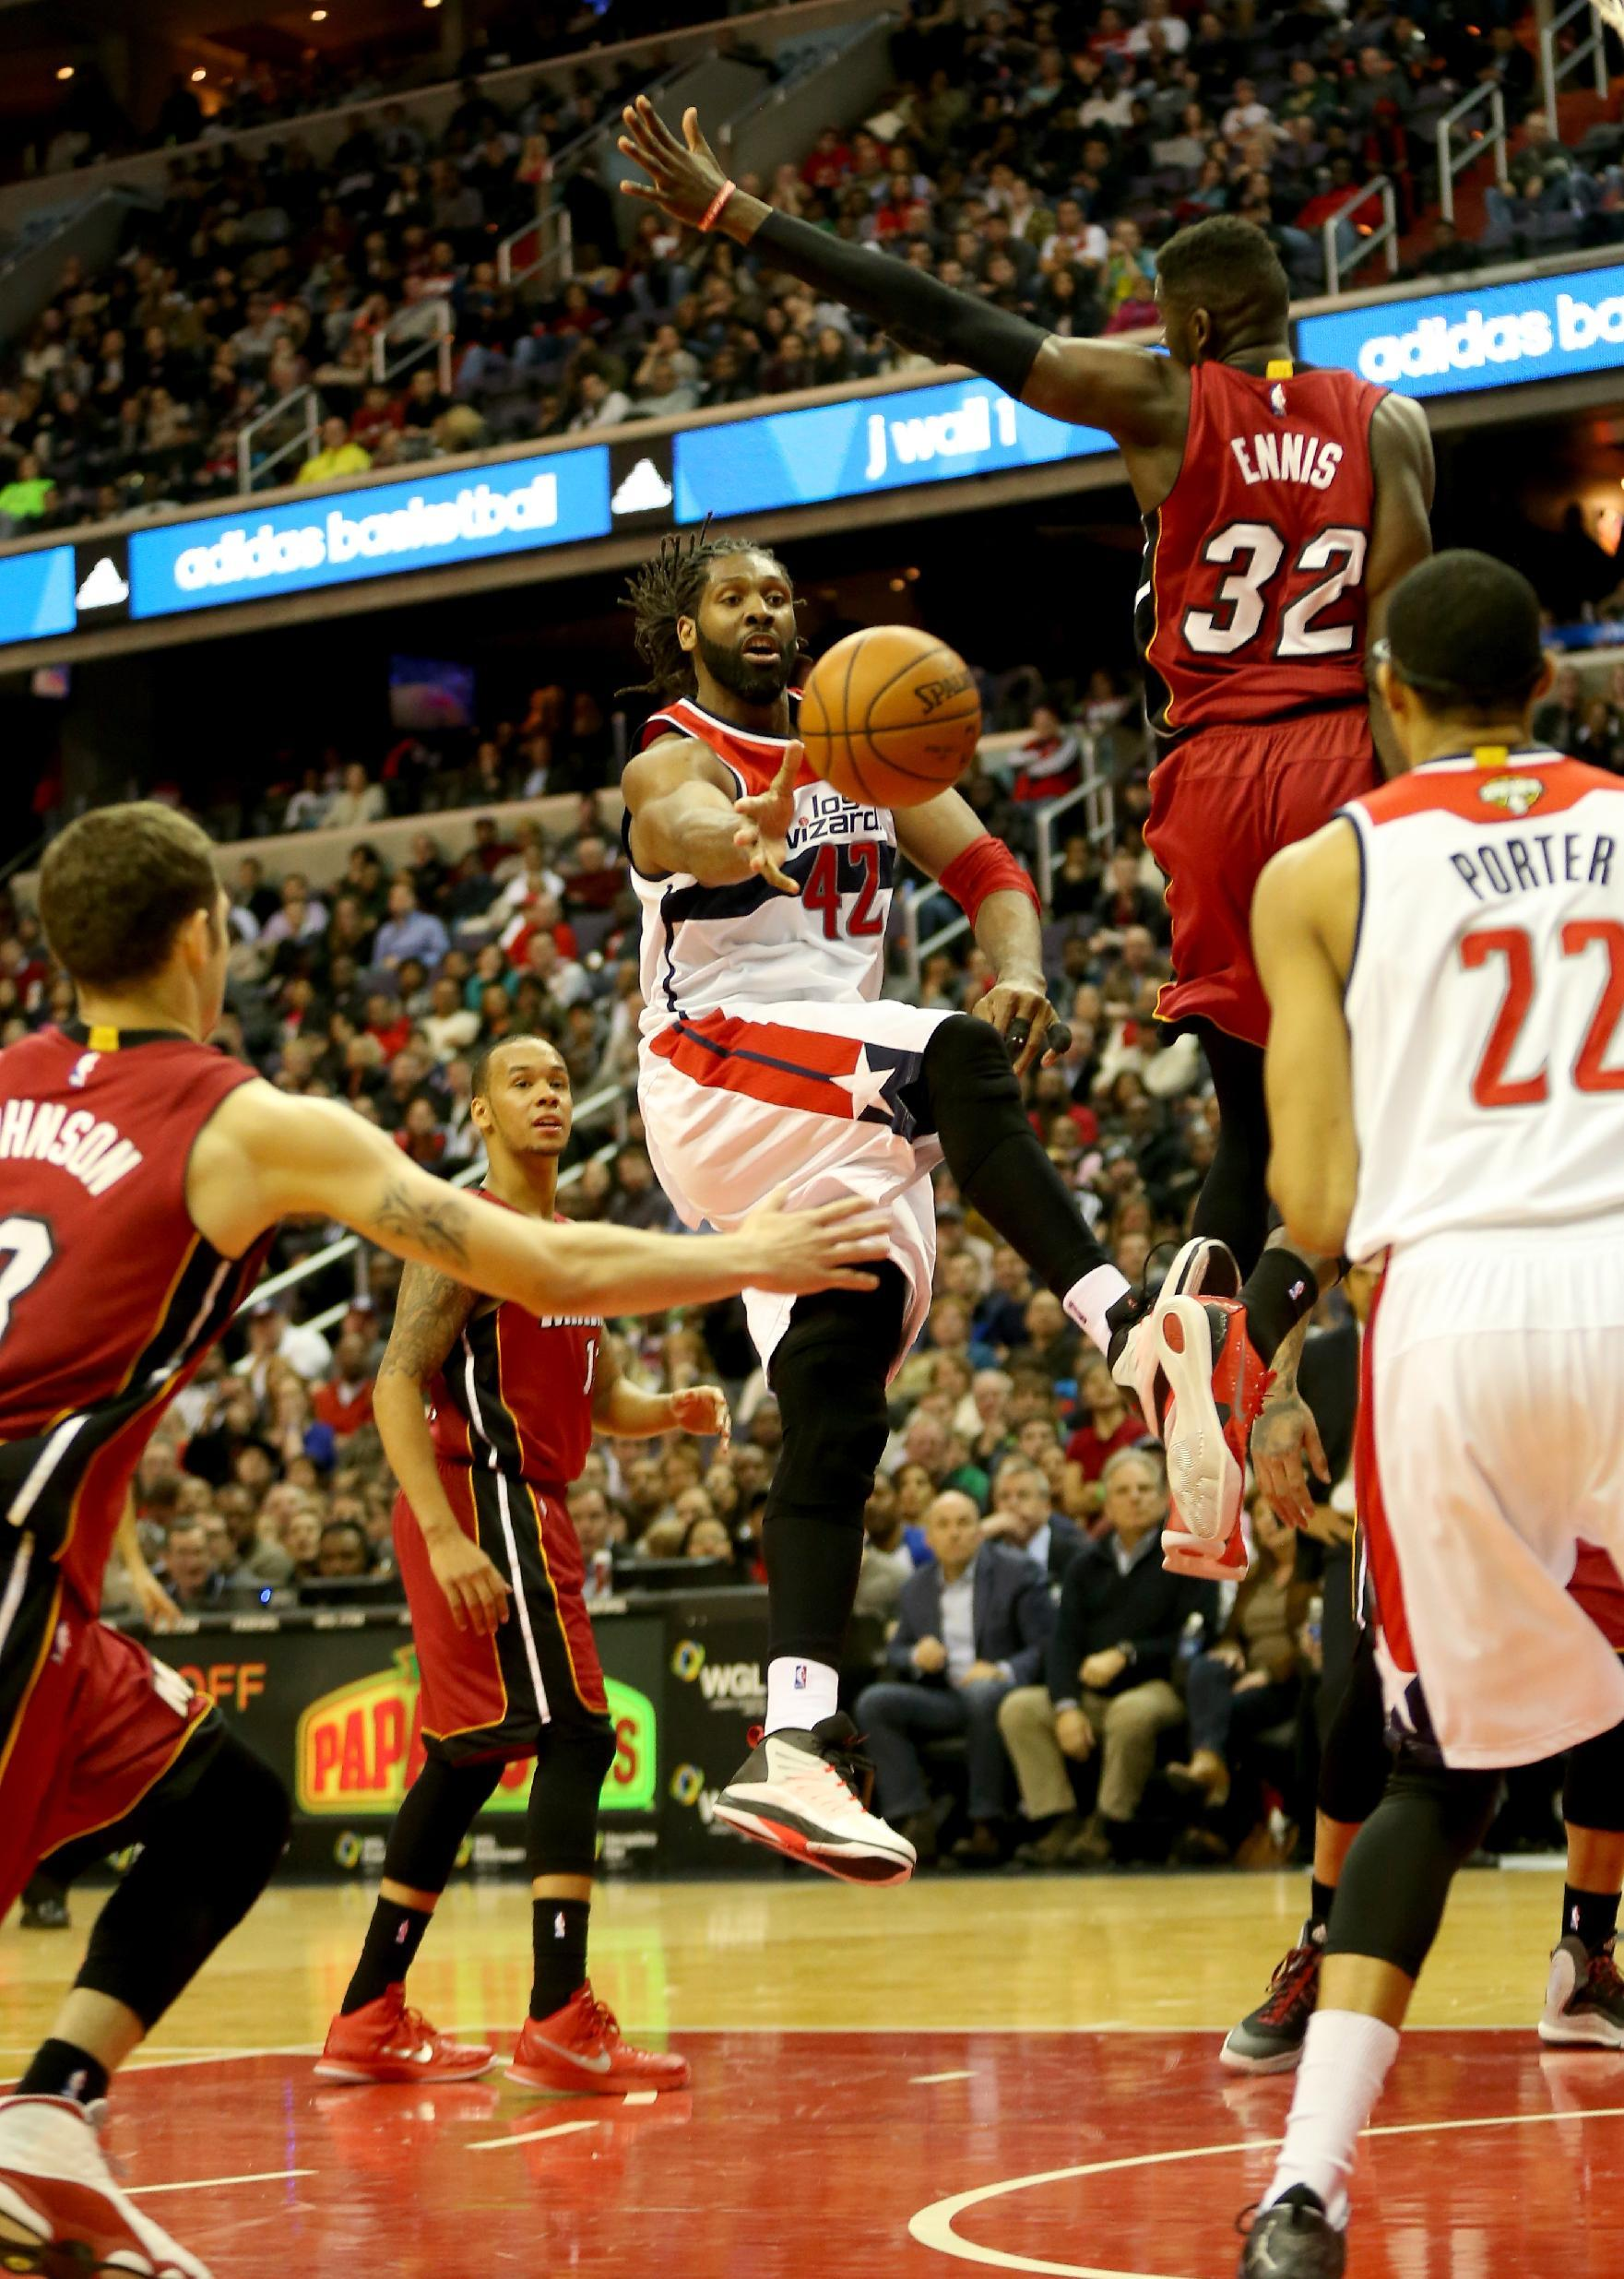 Wizards hold off Heat rally in 99-97 victory